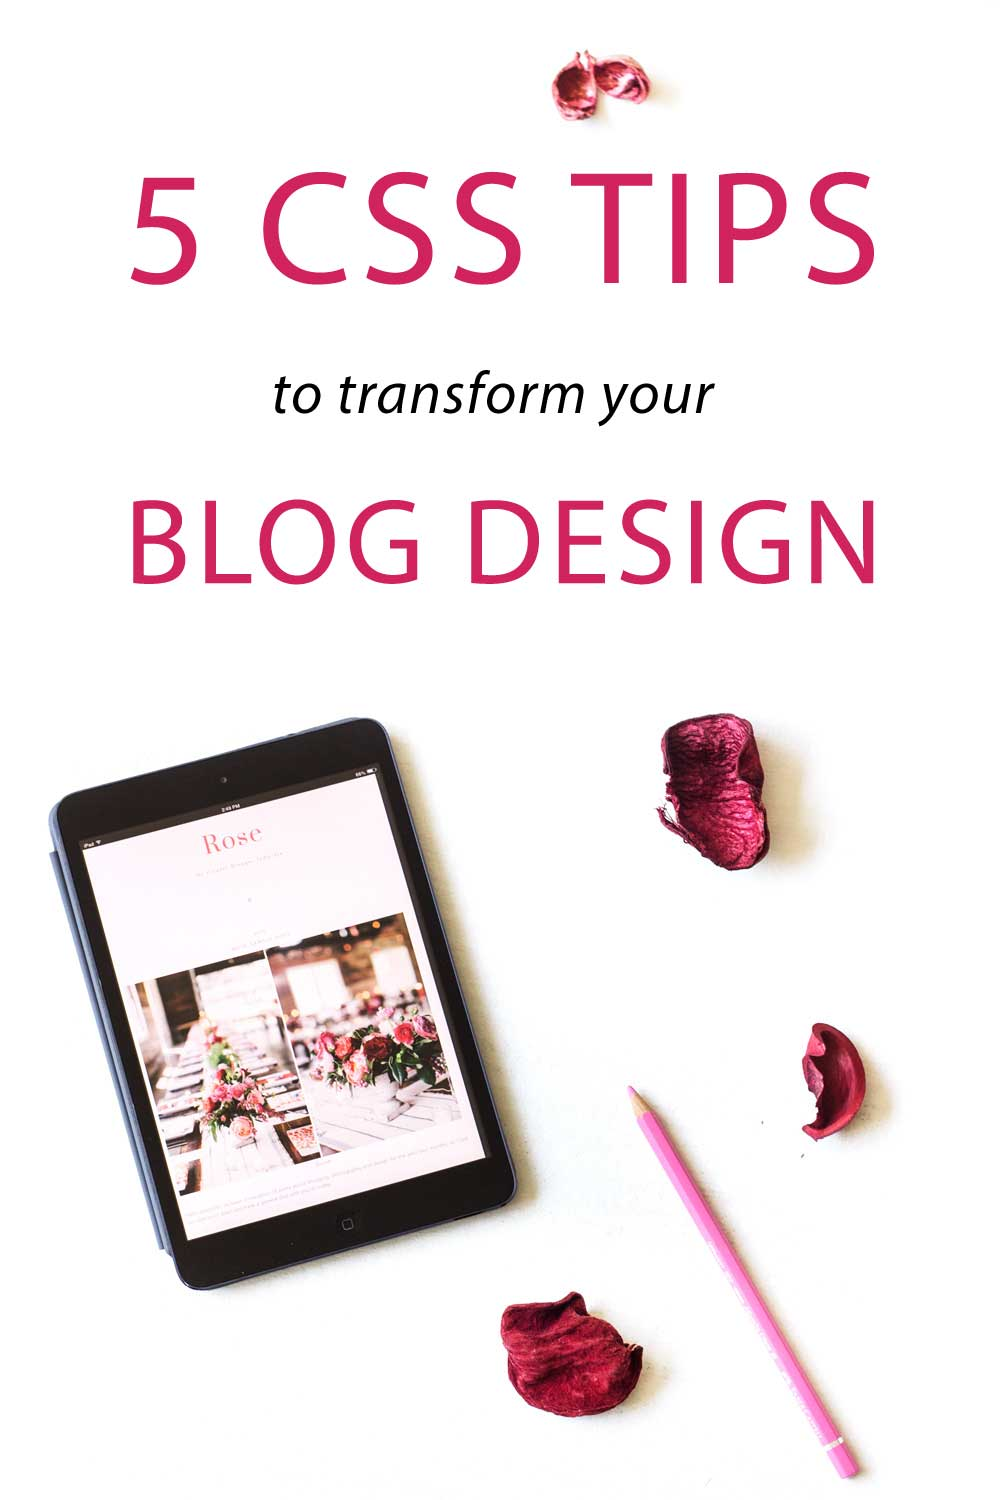 Give your blog a makeover by using these 5 simple CSS Tricks. These will transform The Look Of Your Blog - try them out! You can find the detailed steps + the code to implement them!